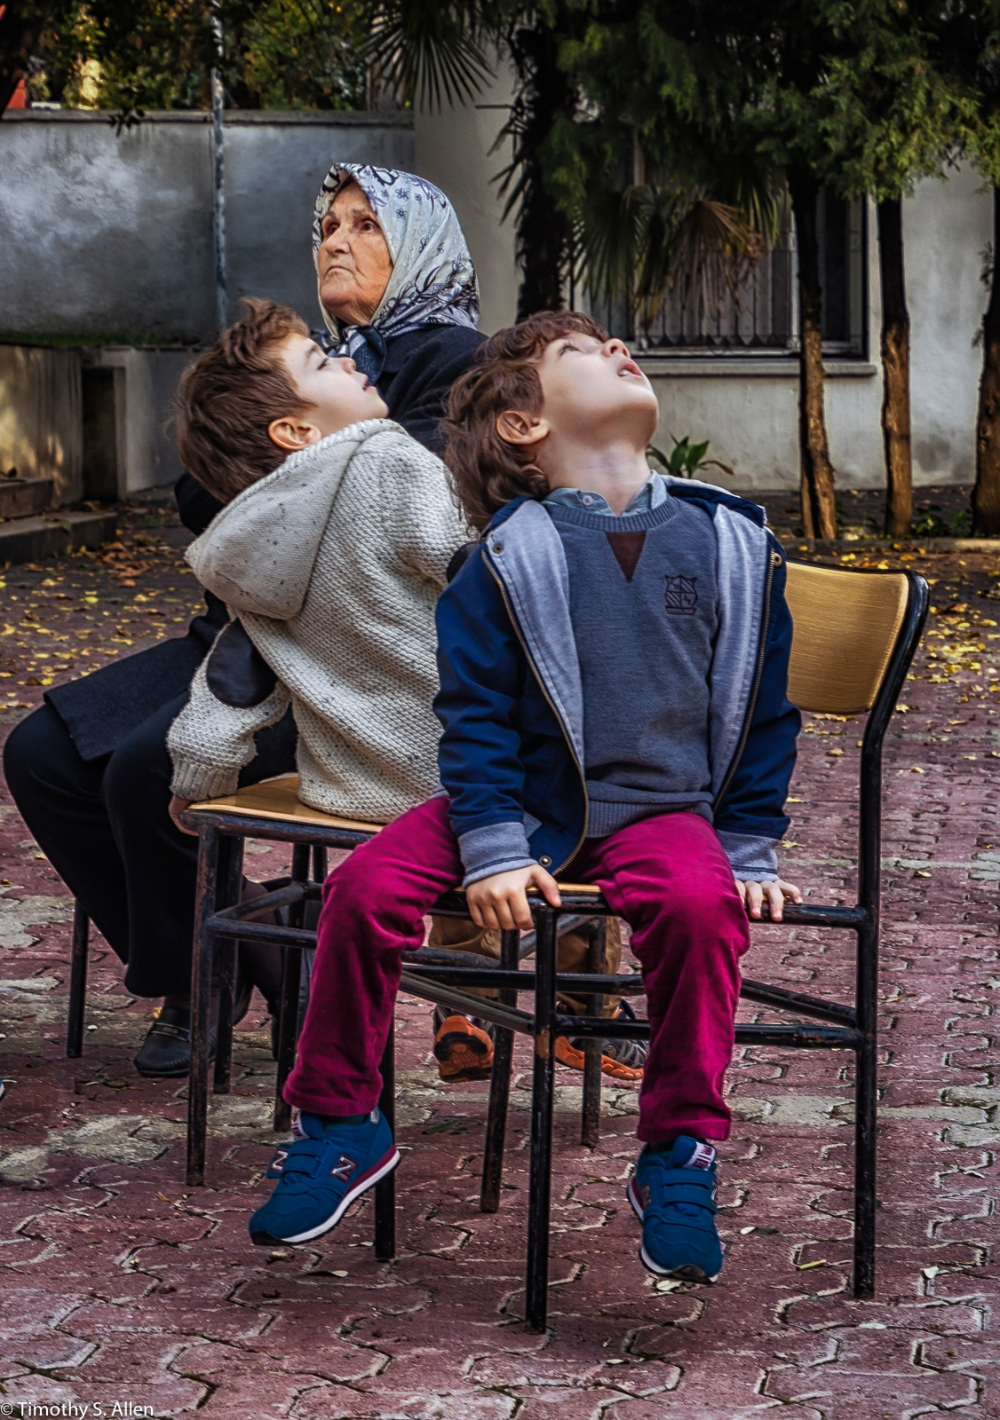 Children and Grandma Attending the Papermaking Workshop, Museum of Paper and Book Arts by Jane Ingram Allen This Workshop is Part of Allen's Fulbright Specialist Project. Ege University, Izmir, Turkey November 29, 2015